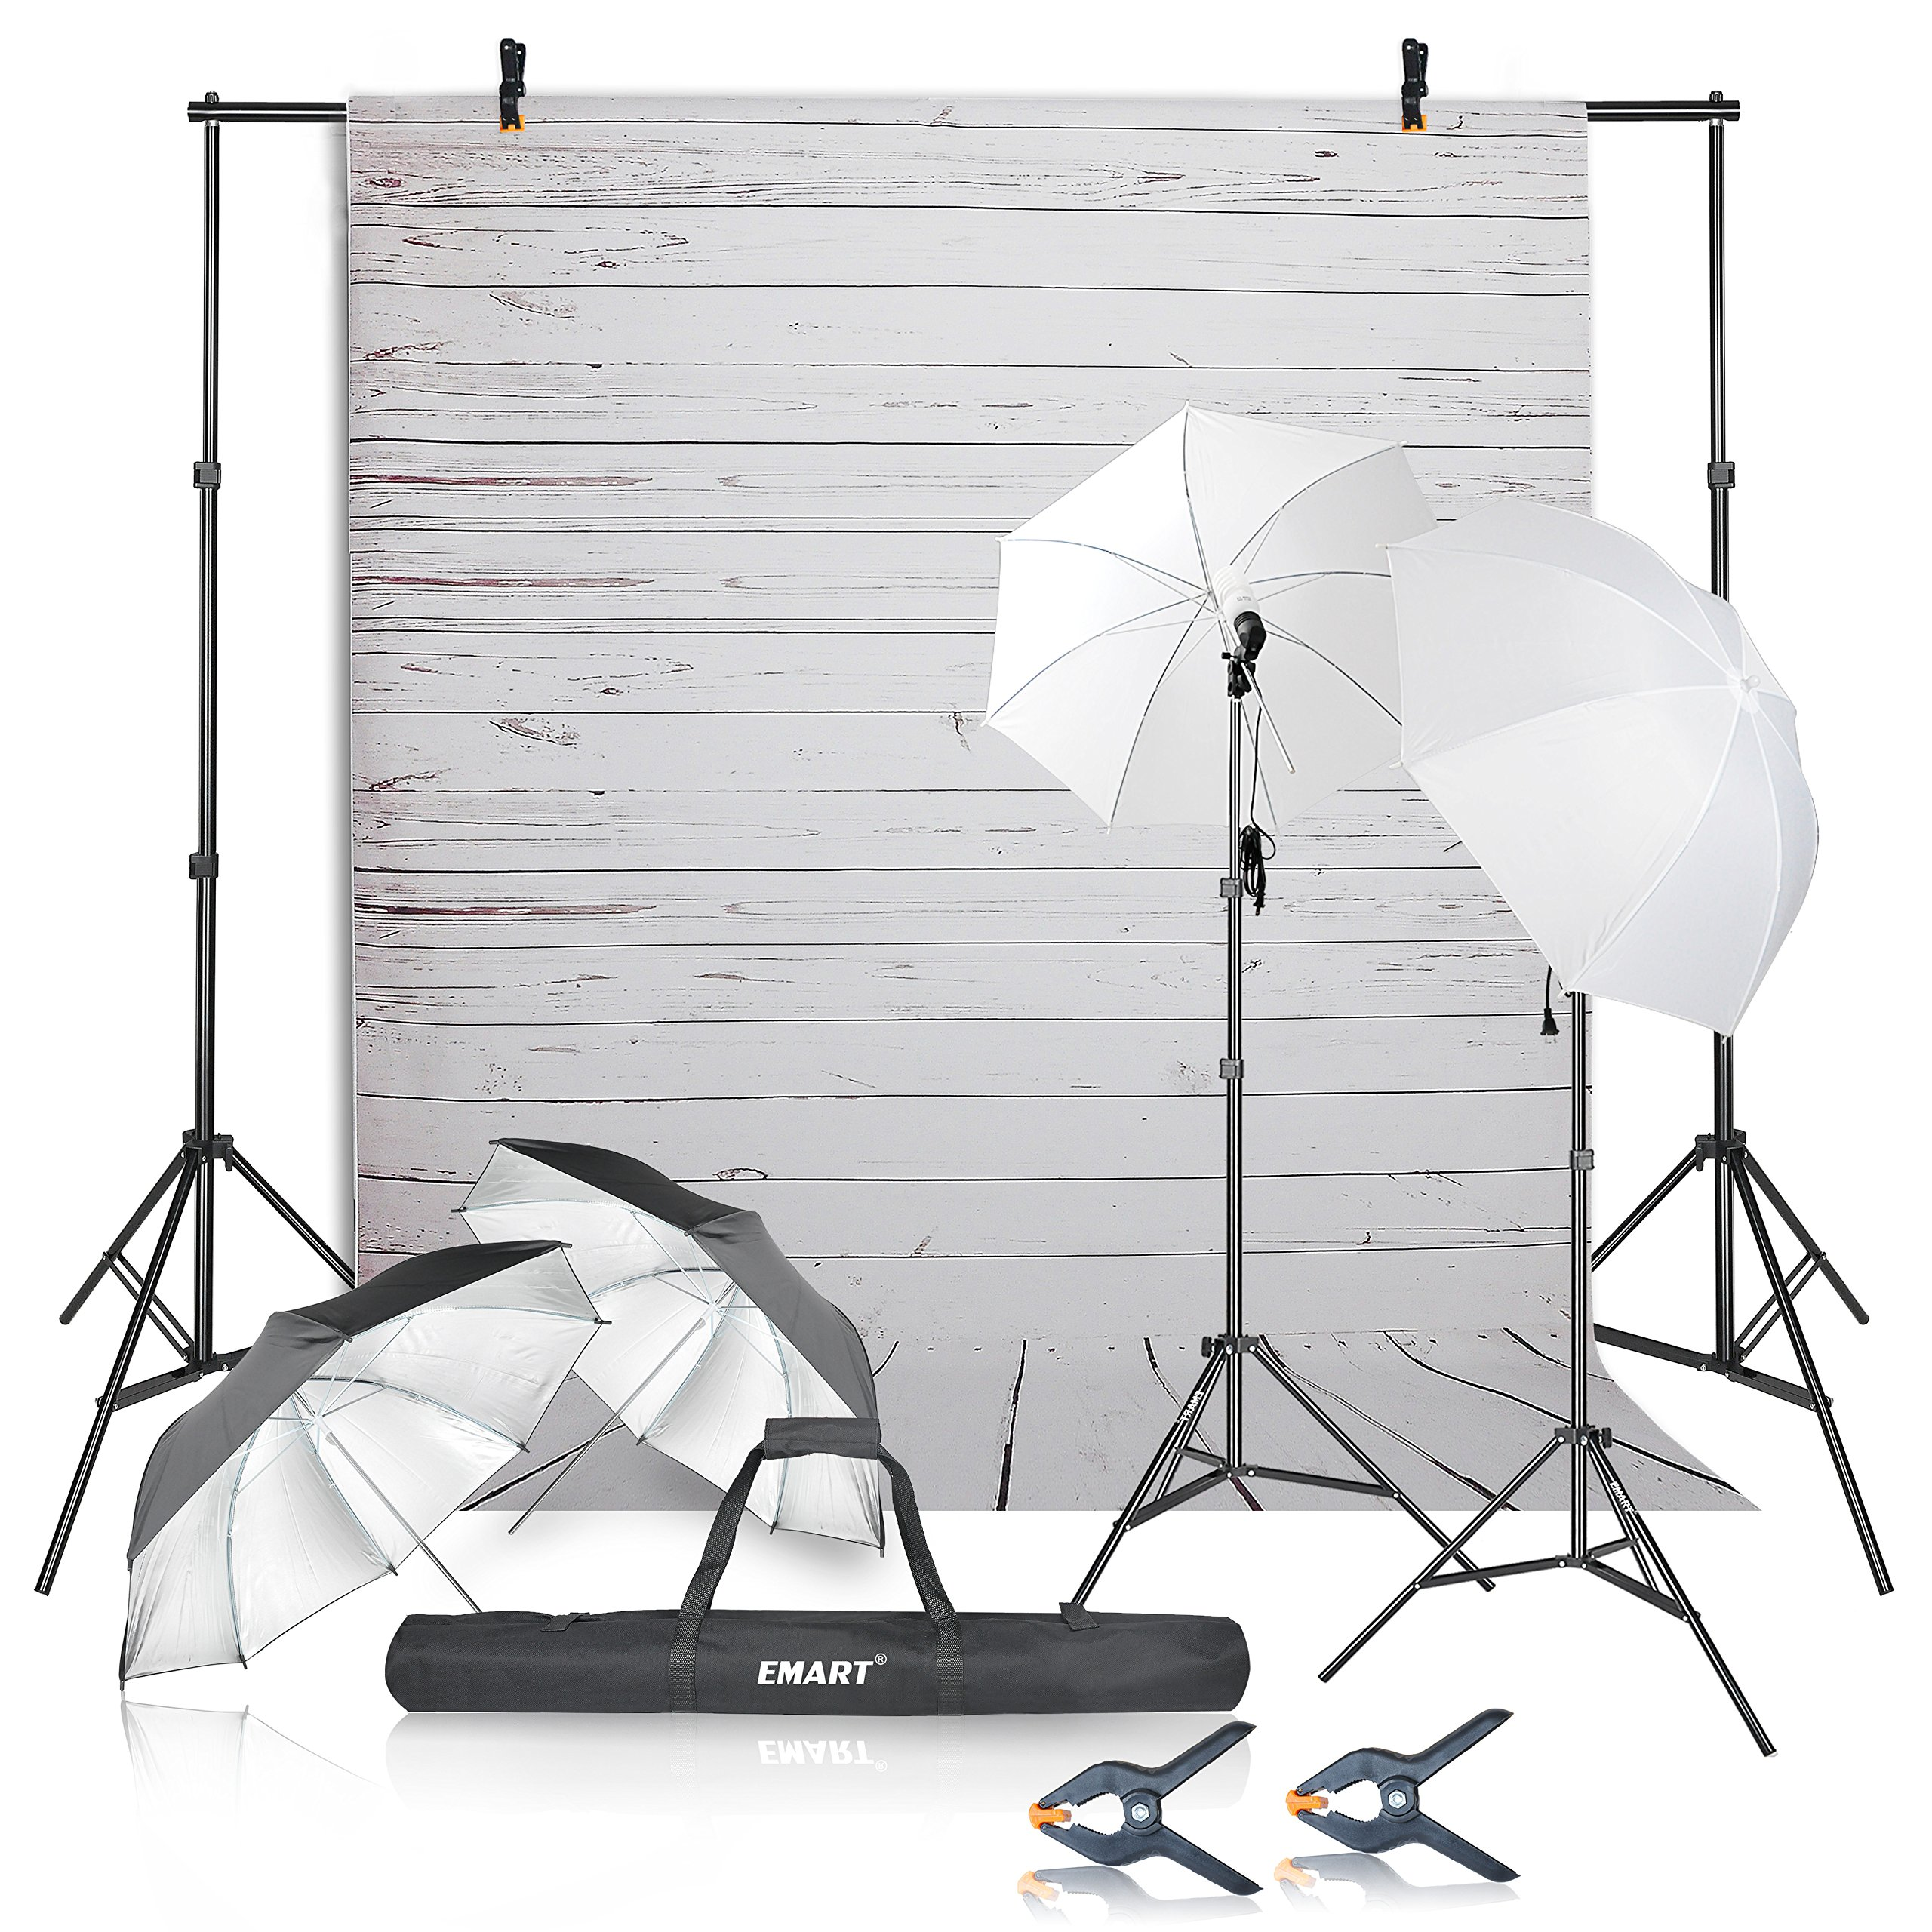 Emart Photography Umbrellas Continuous Lighting Kit, 400W 5500K, 10ft Backdrop Support System with Vinyl Plastic White Wood Floor Background Screen for Photo Video Studio Shooting by EMART